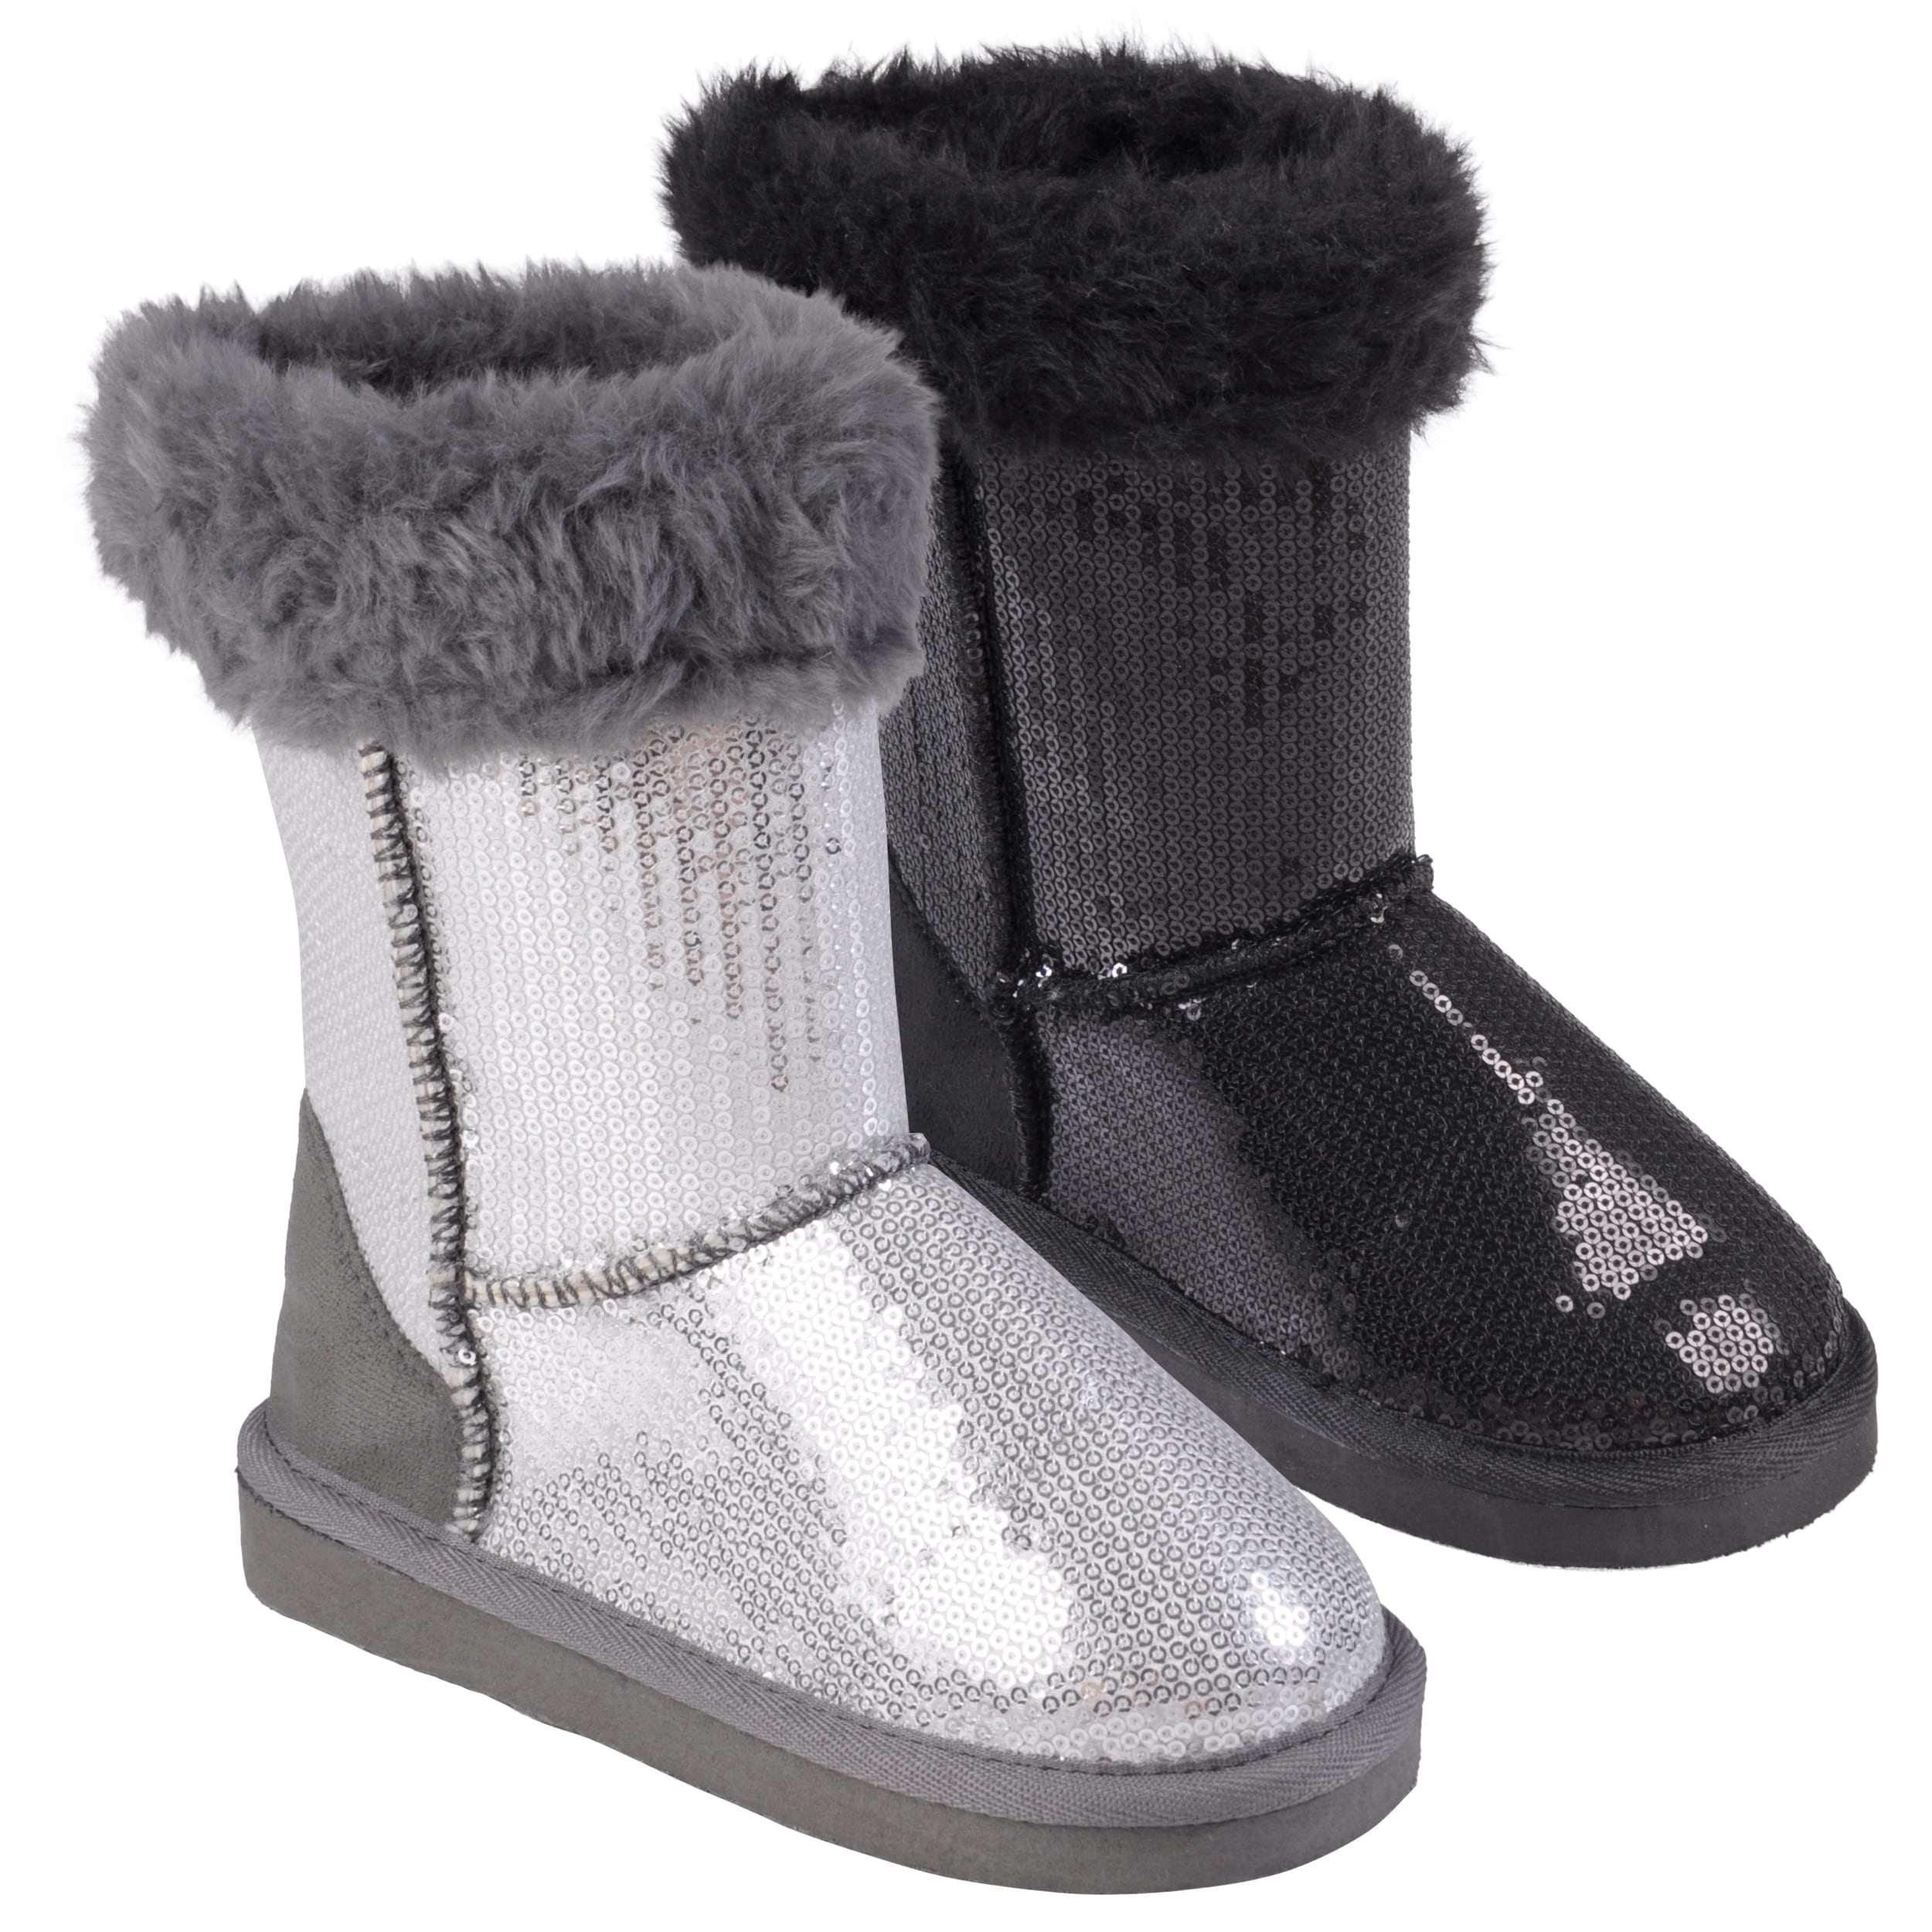 Journee Collection Kid's 'Ugena-star' Faux Fur Accent Sequined Boots